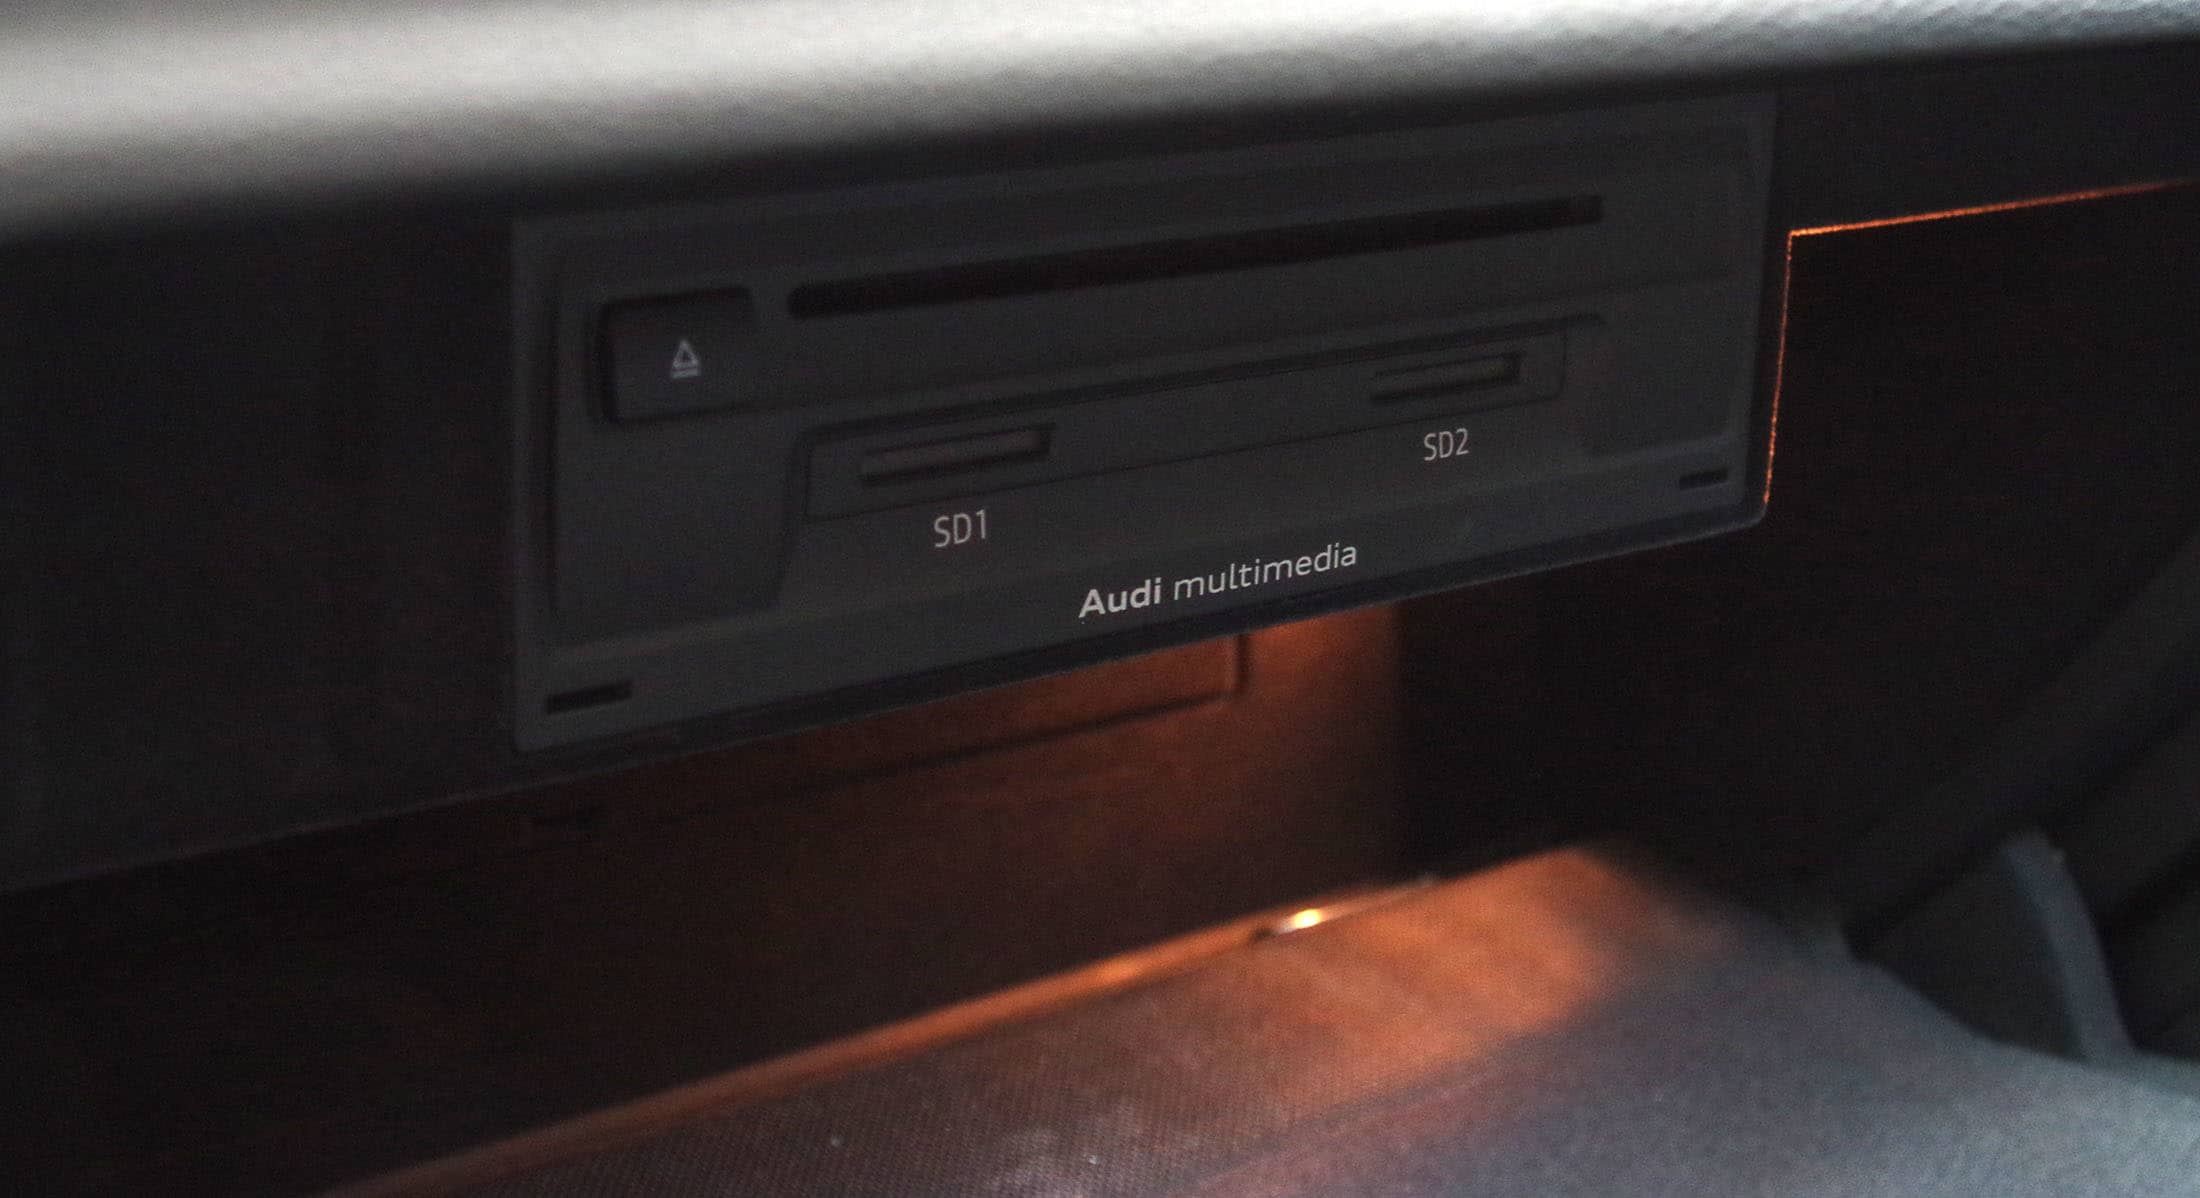 2015 audi a3 CD player